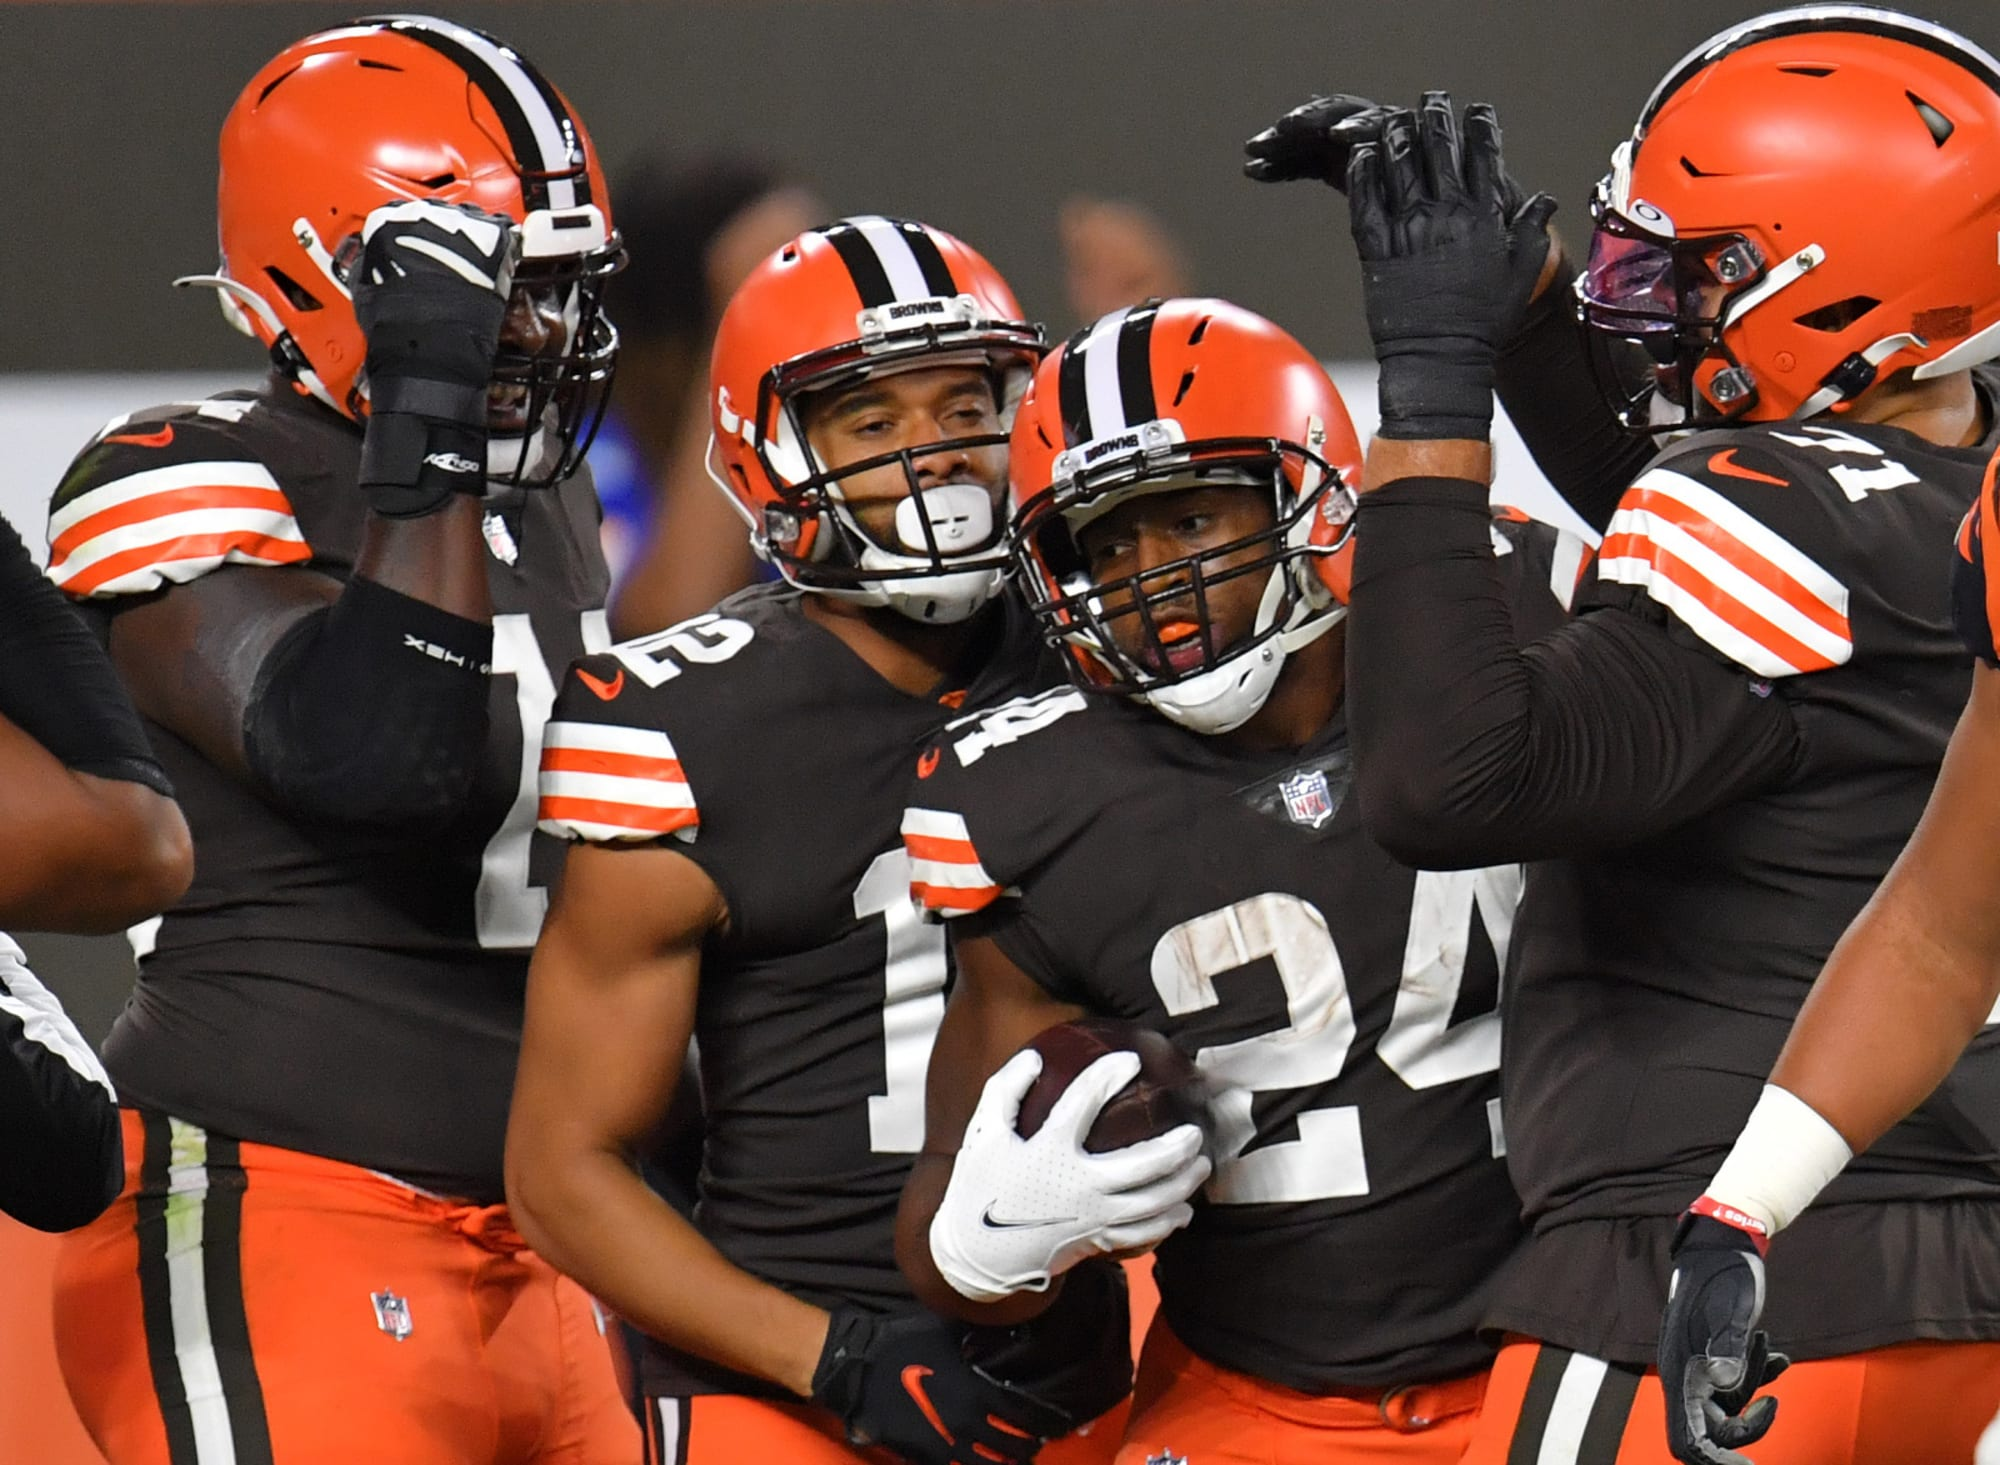 Nick Chubb scored two touchdowns on the night